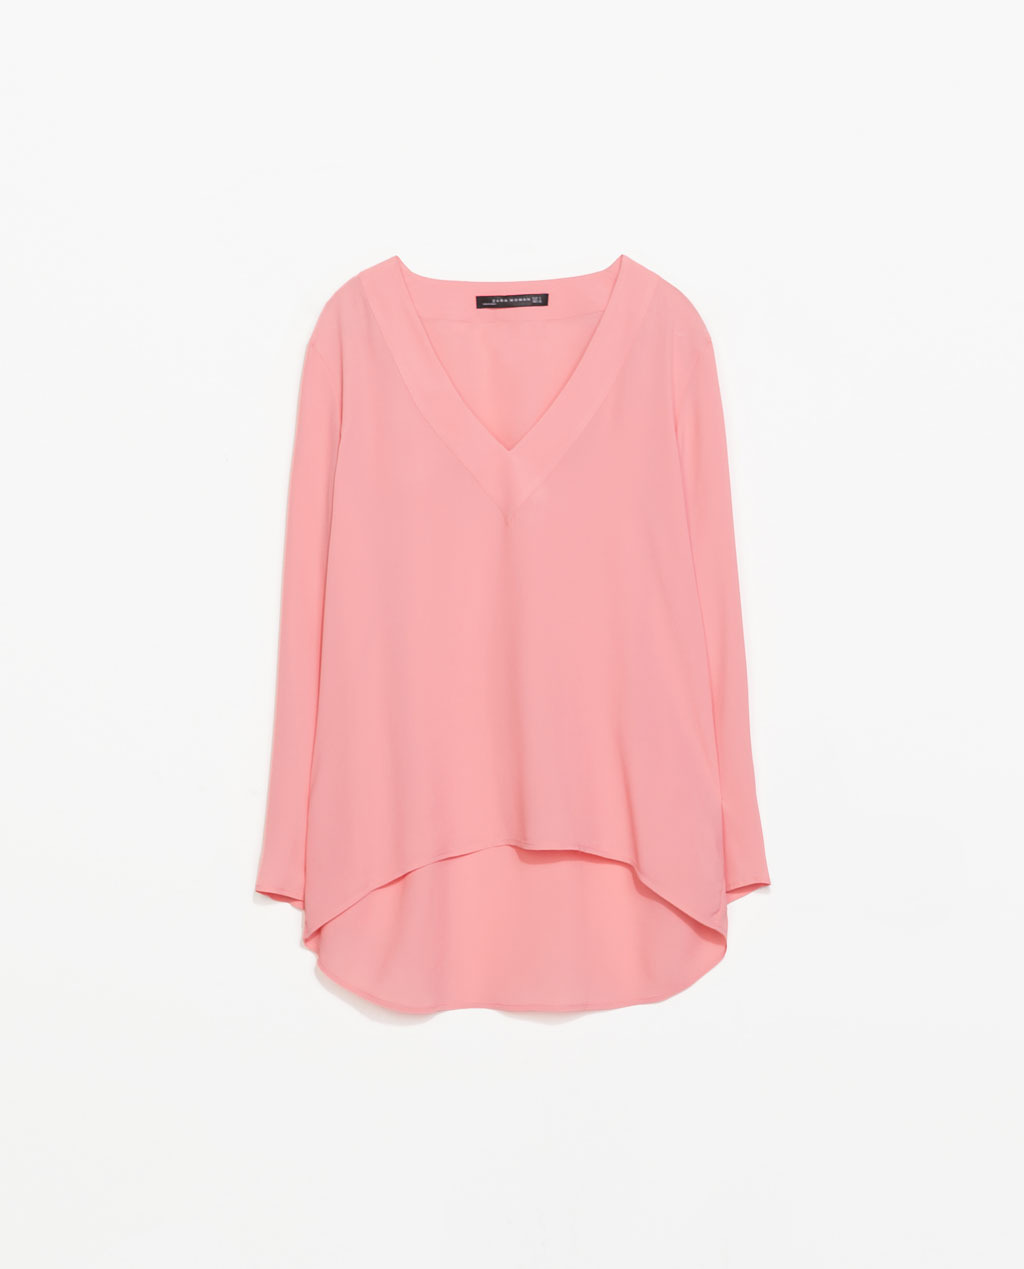 Asymmetric Top - neckline: low v-neck; pattern: plain; length: below the bottom; predominant colour: pink; occasions: casual, evening, work, holiday, creative work; style: top; fibres: viscose/rayon - 100%; fit: loose; sleeve length: long sleeve; sleeve style: standard; texture group: sheer fabrics/chiffon/organza etc.; trends: sorbet shades; season: s/s 2014